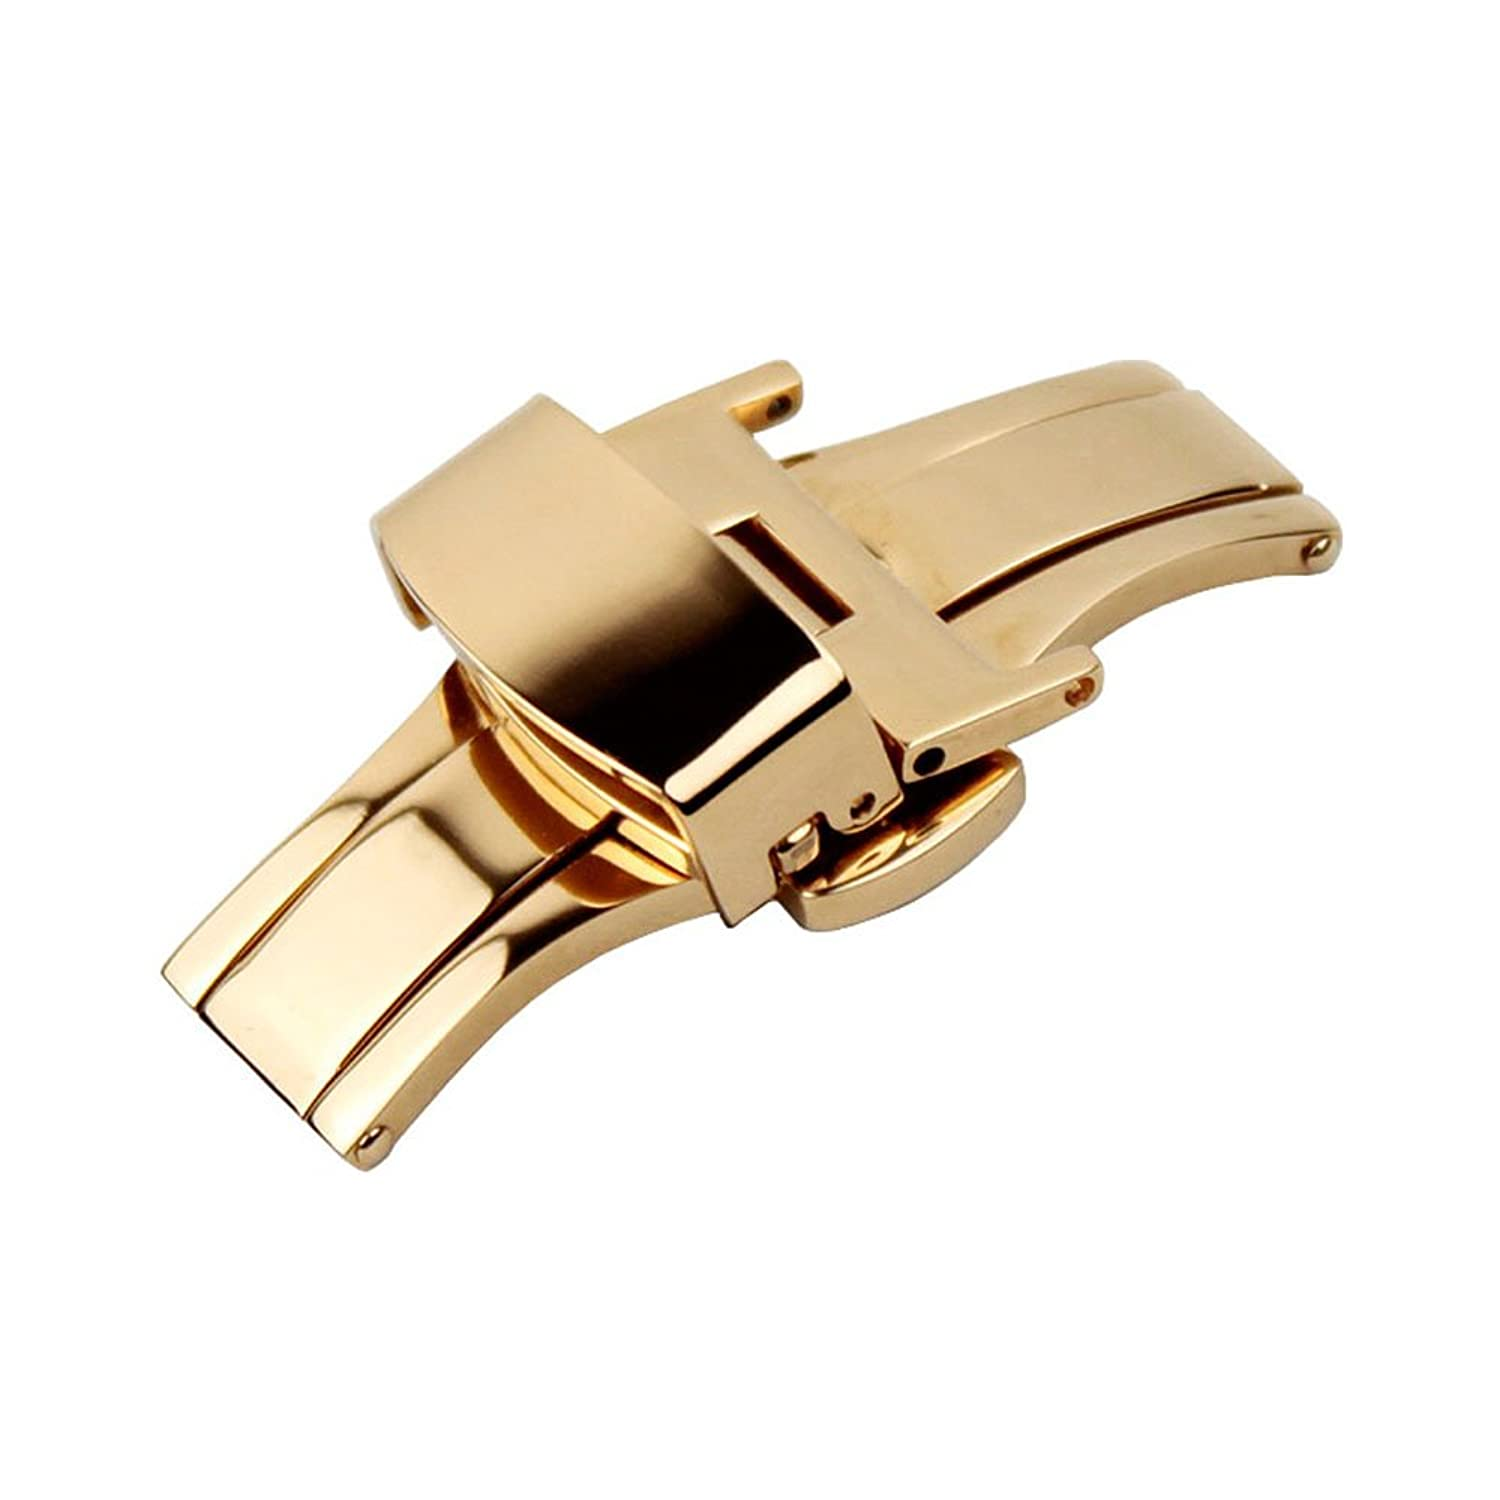 Ritche 16mm Stainless Steel Push Button Butterfly Deployment Clasp For Leather Watch band Strap Gold stainless steel watch band for zenith paul picot moser 21mm push button hidden clasp metal strap belt wrist loop bracelet pin